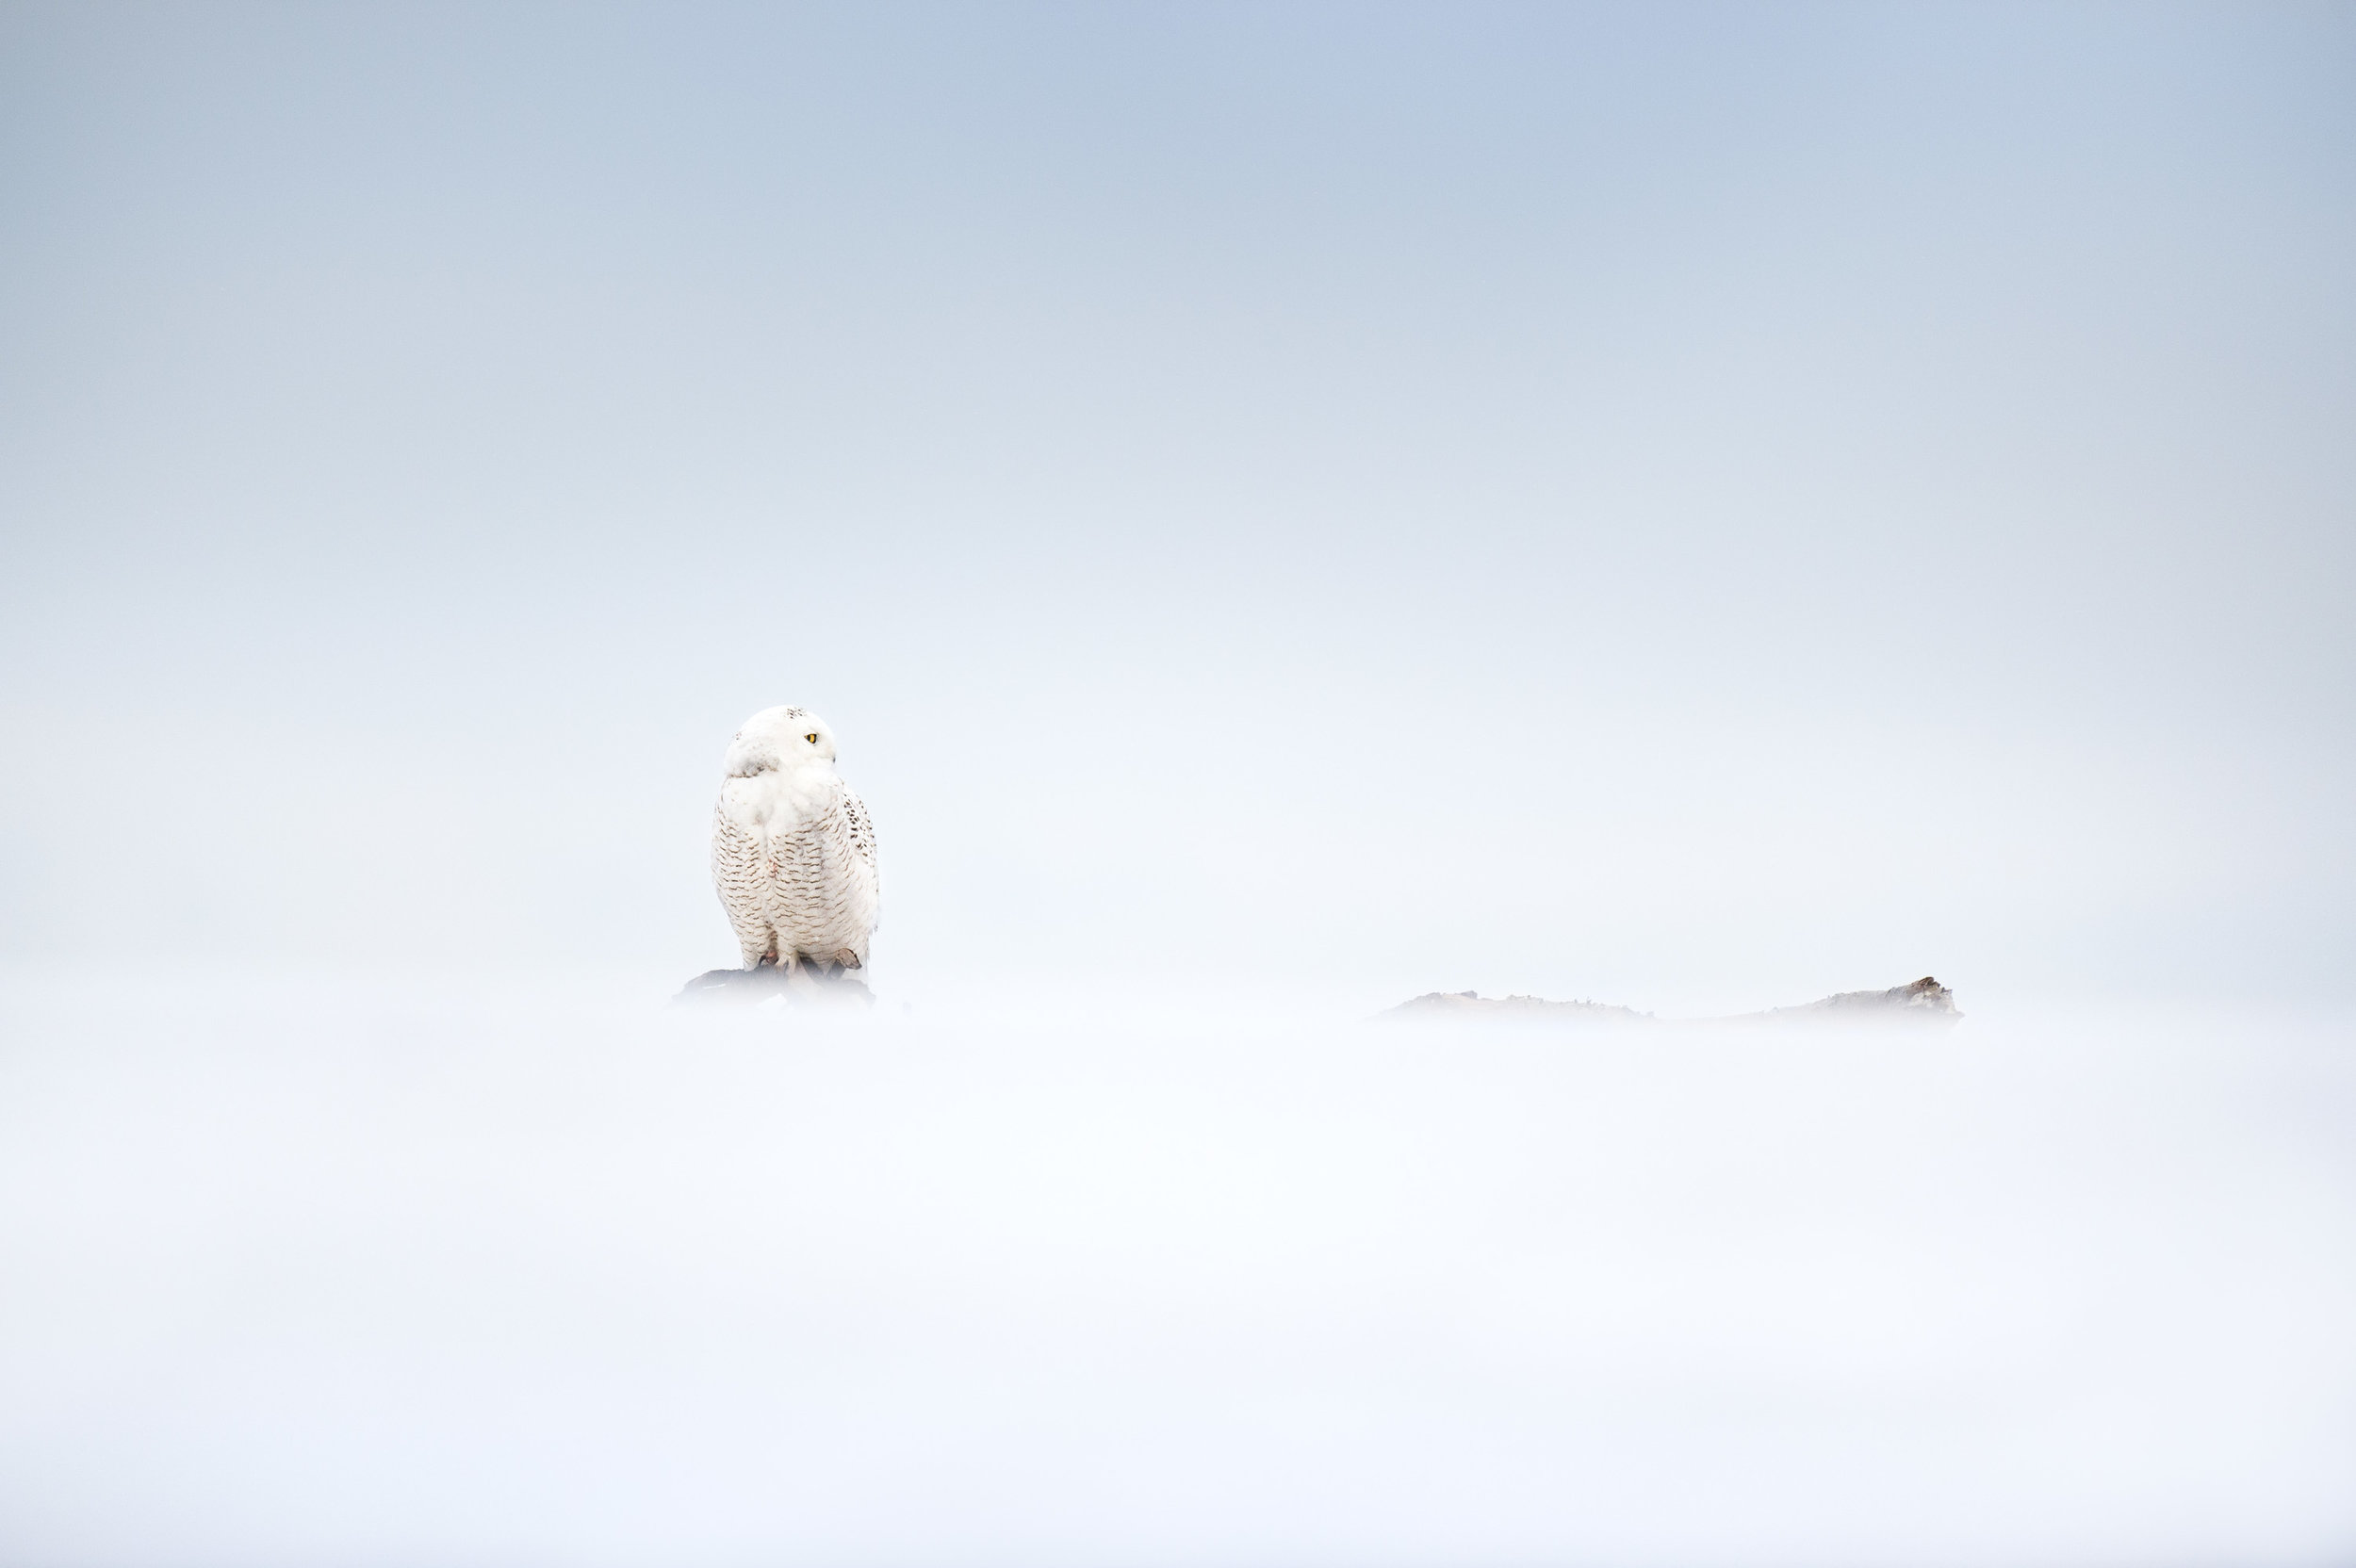 Getting as low as possible and a creative use of foreground blur helped to make this unique photo of a Snowy Owl perched in a snowy landscape on an overcast day.